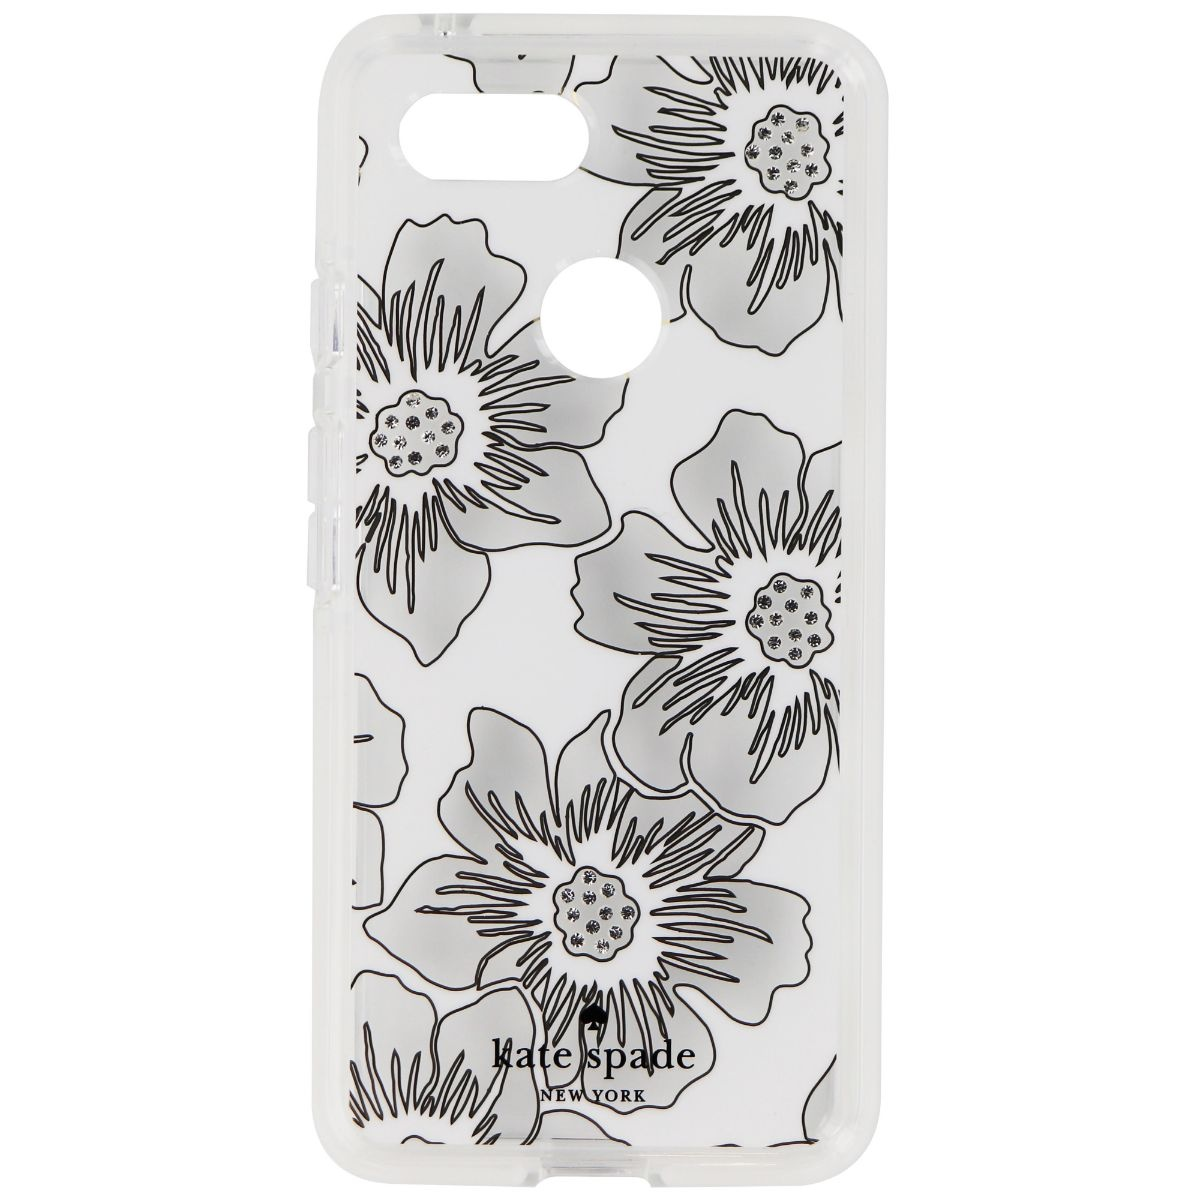 separation shoes ac5cd c1286 Kate Spade Defensive Hardshell Case for Google Pixel 3 - Reverse  Hollyhock/Cream